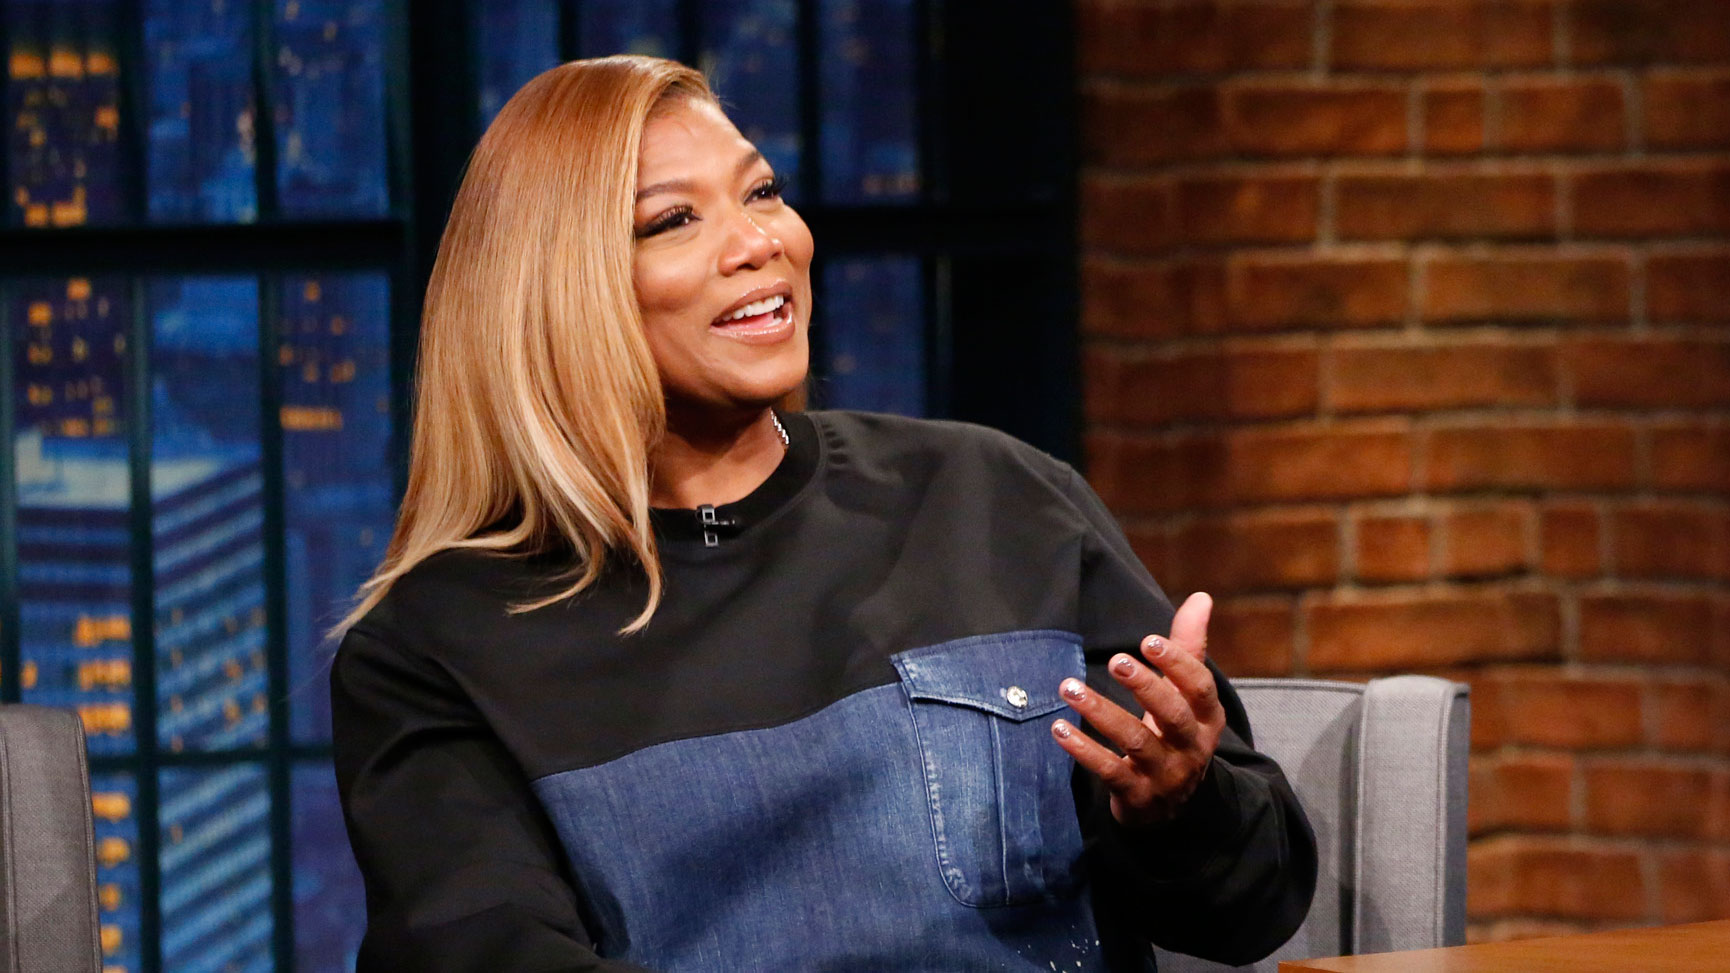 Queen Latifah Fakes Ideal watch late night with seth meyers interview: queen latifah put a